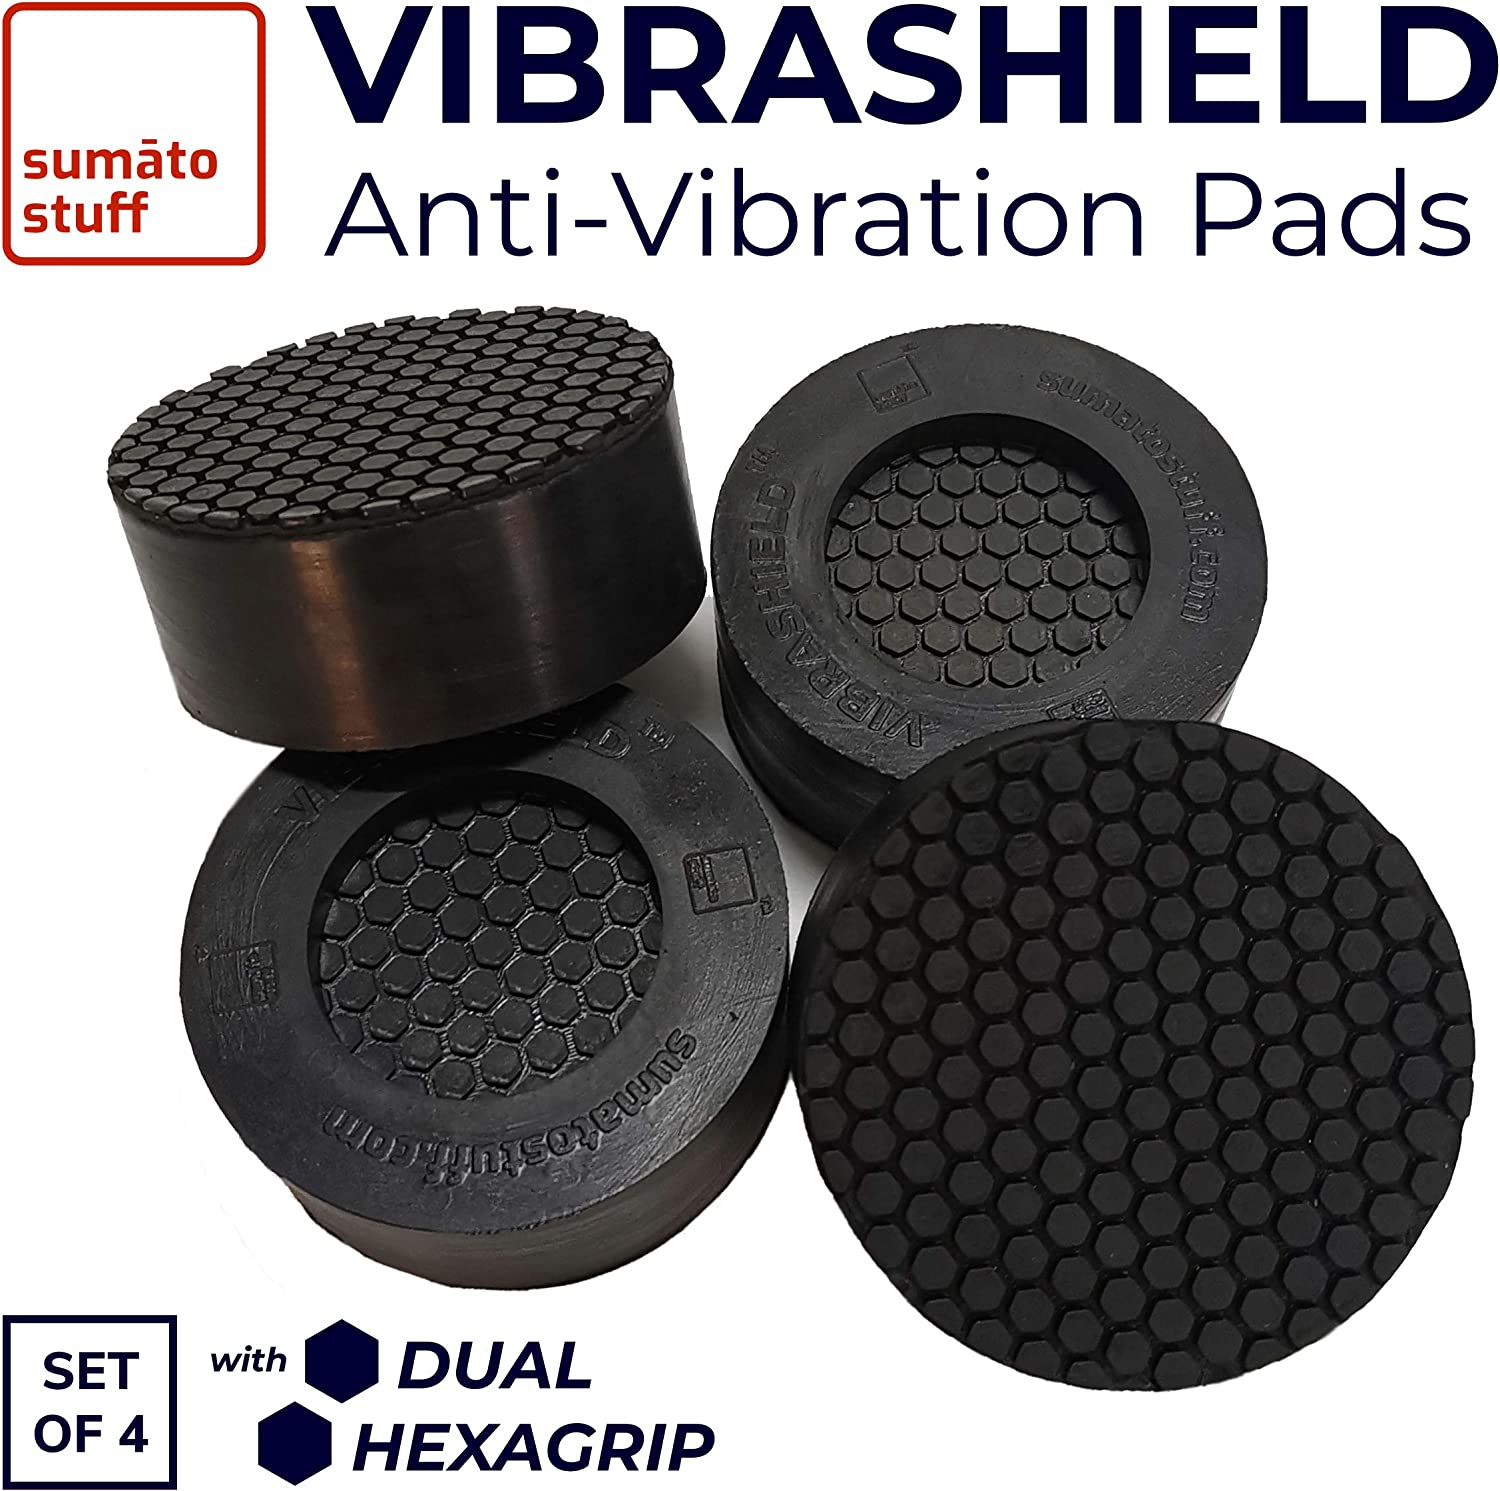 Anti Vibration Pads for Washing Machine with Dual HexaGrip | Prevents Vibrations, Noise, Shaking & Walking | Shock Absorbing Non Slip Grip Feet Pad for Washer Dryer Appliances [Universal Fit - 4 Pack]